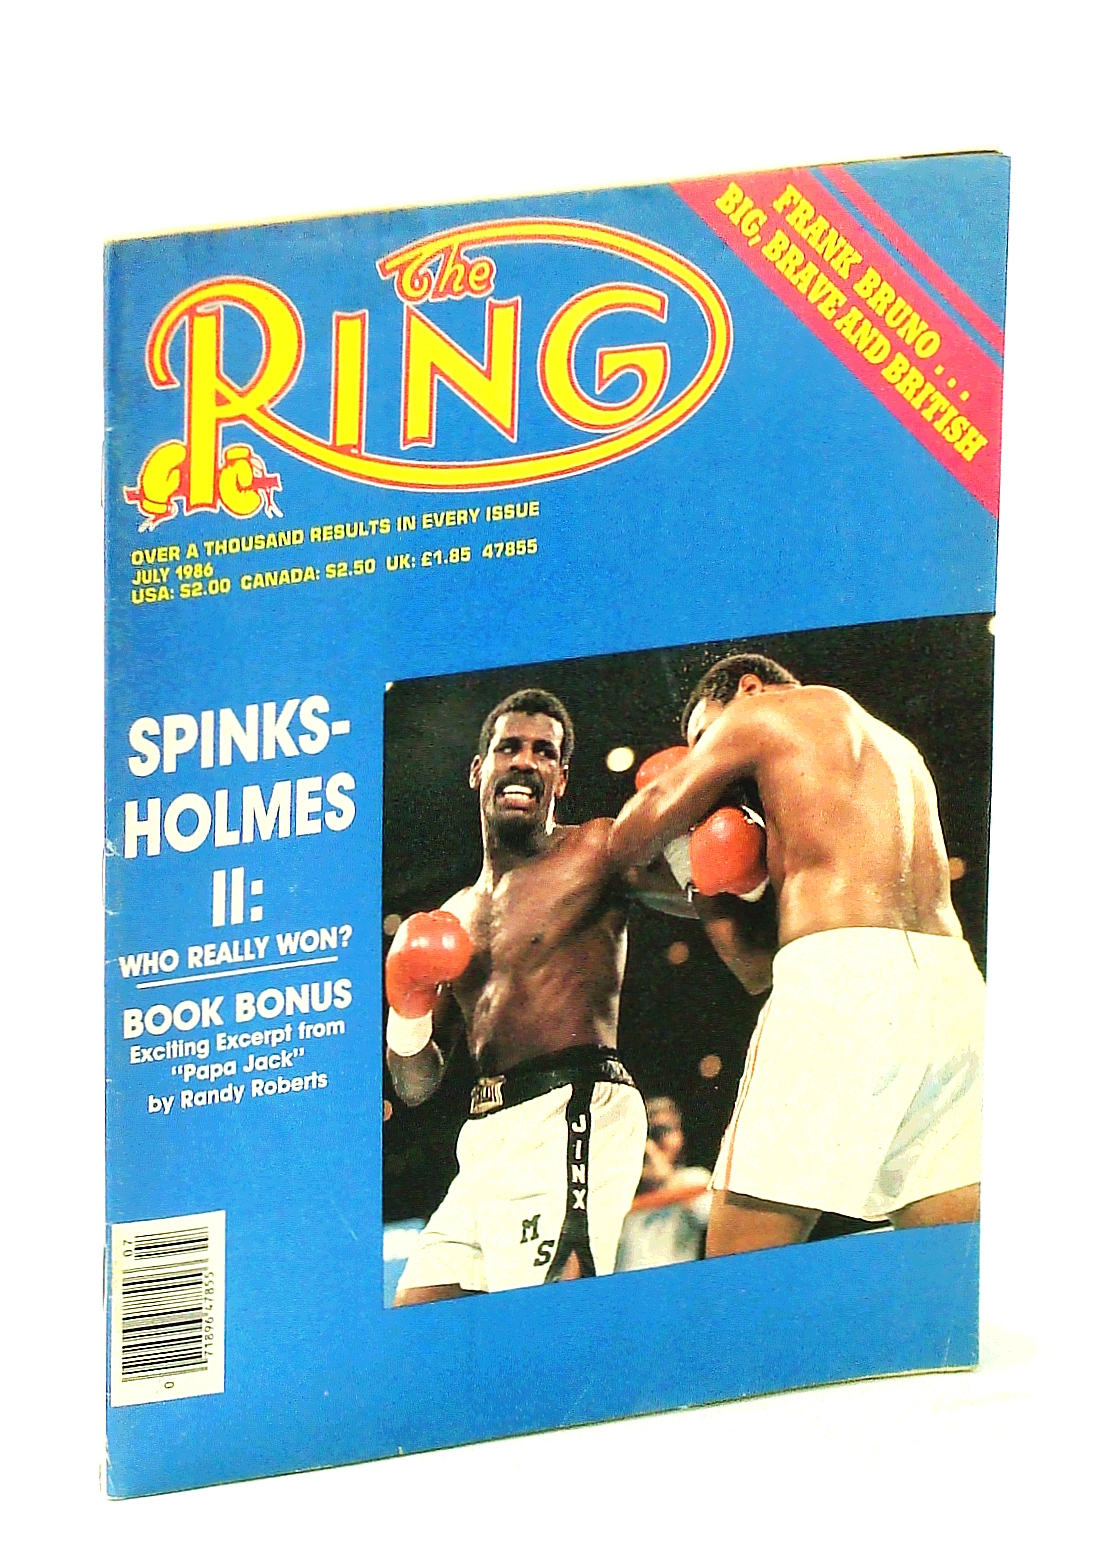 Image for The Ring [Magazine] - The Bible of Boxing, July 1986 - Spinks-Holmes II Cover Photo